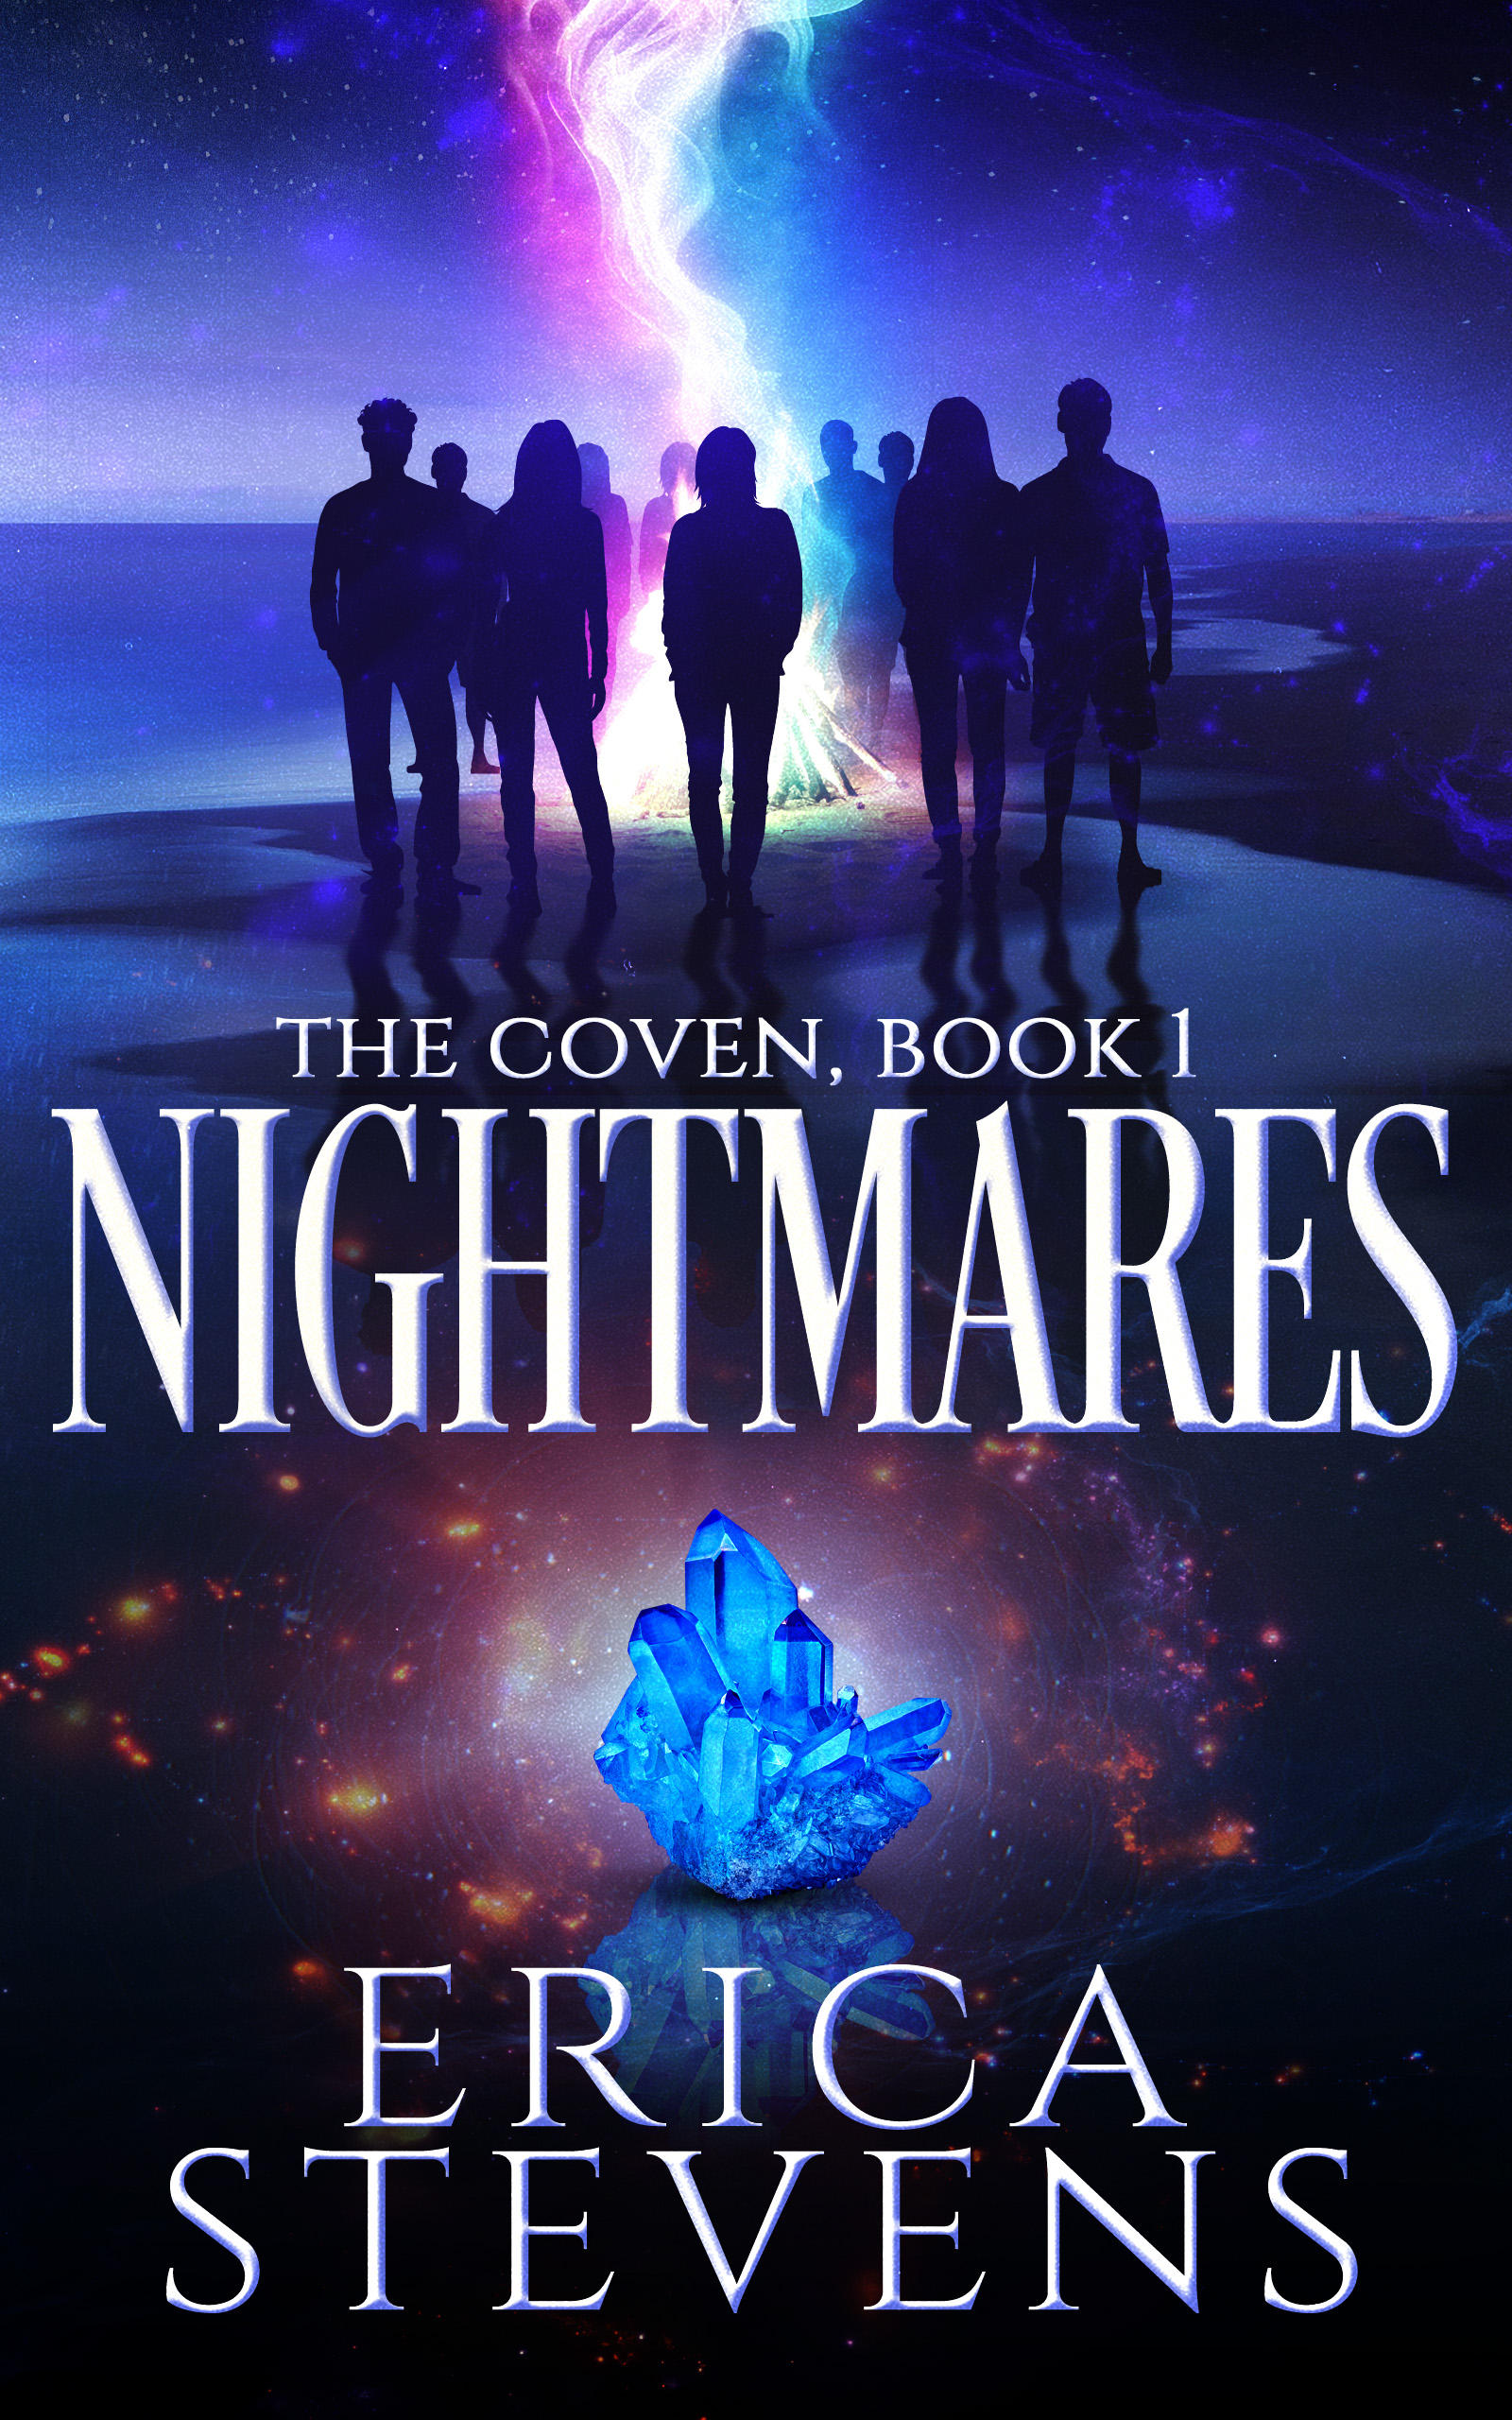 Nightmares (The Coven, Book 1) (sst-viii)